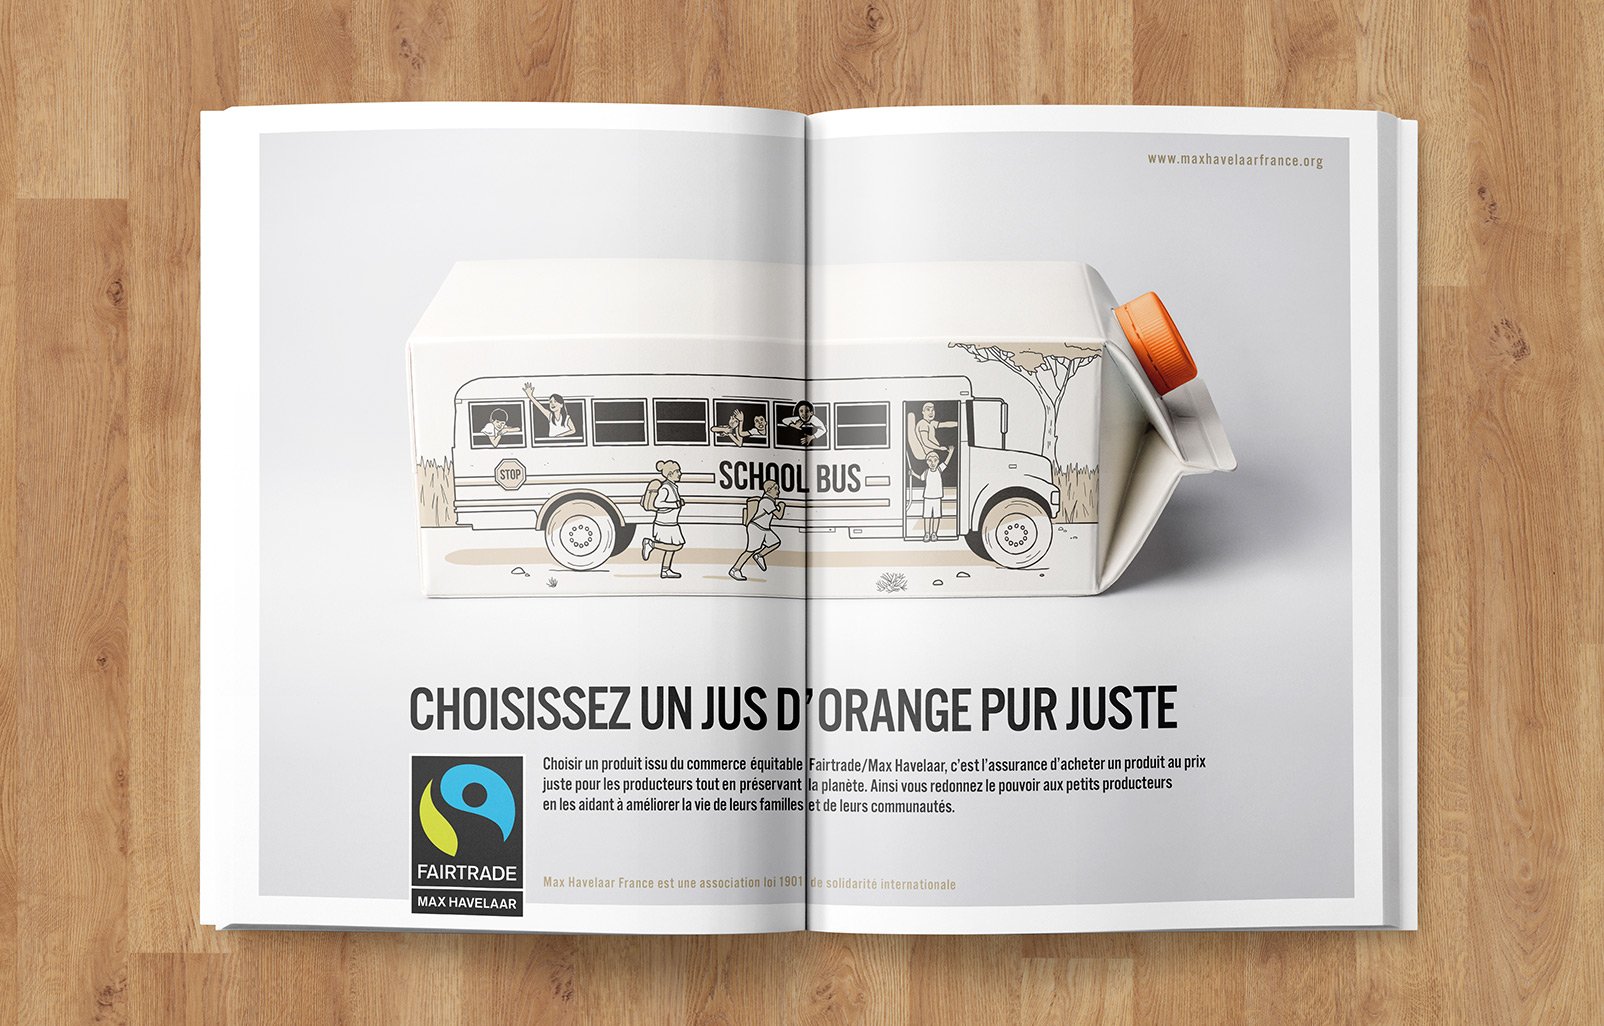 Fairtrade Max Havelaar brique jus d'orange publicité presse Notchup